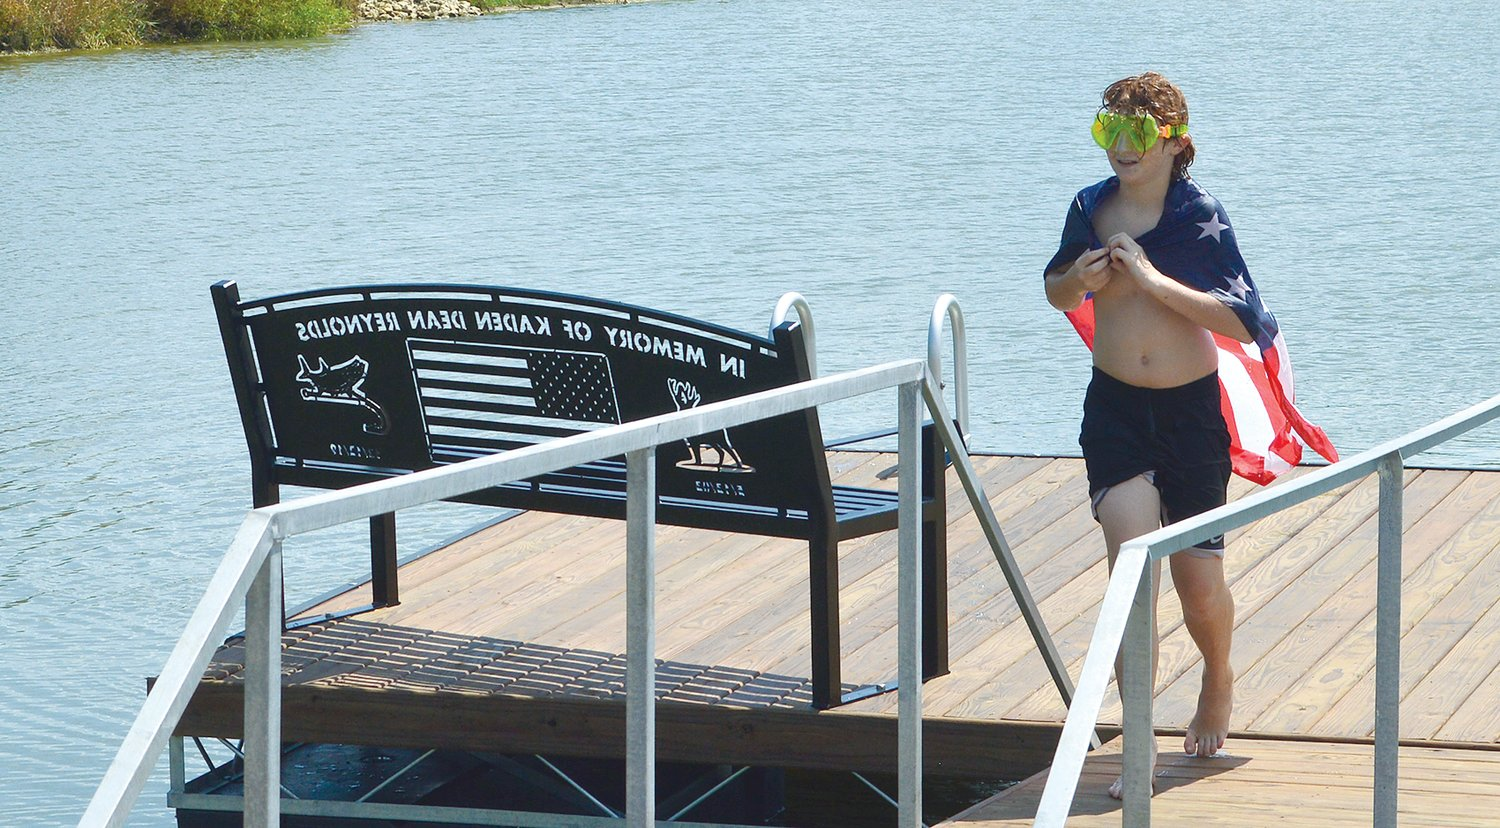 Konnor Reynolds, brother of the late Kaden Reynolds of Nokomis, christened a dock and benches in his big brother's honor with a jump into the pond at Rountree Gun Club.